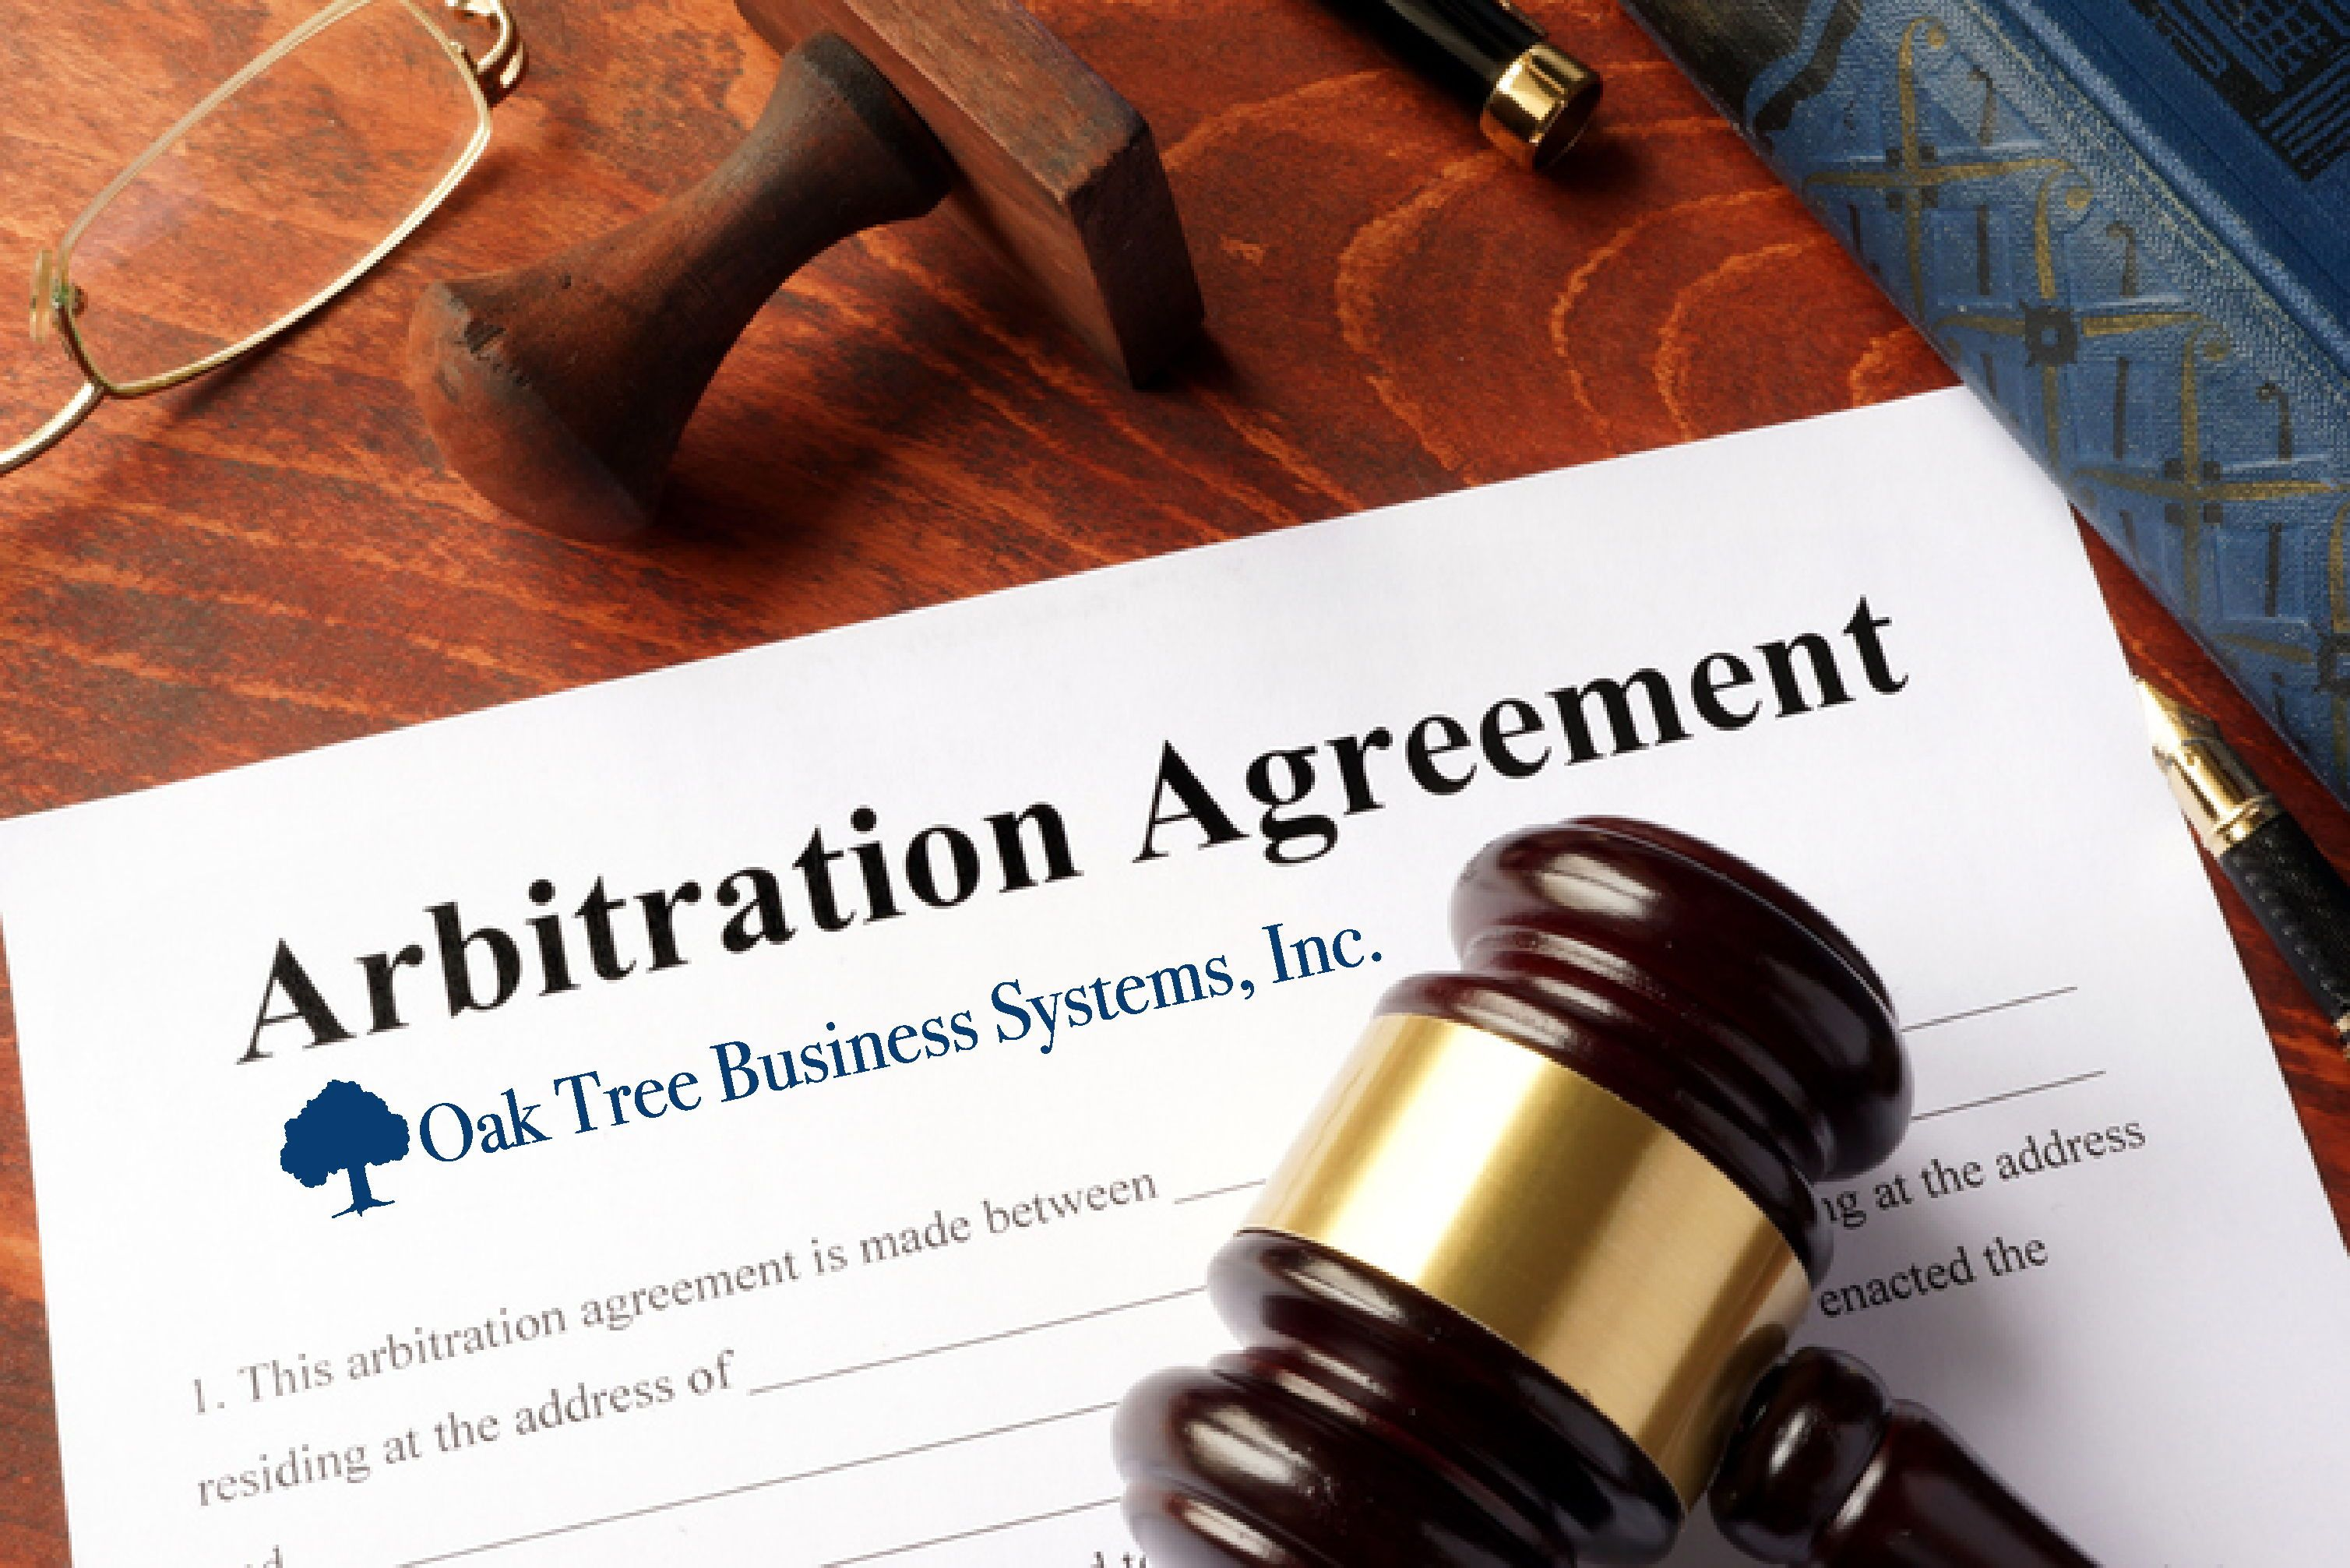 Arbitrate or not to Arbitrate? Oak Tree's carefully